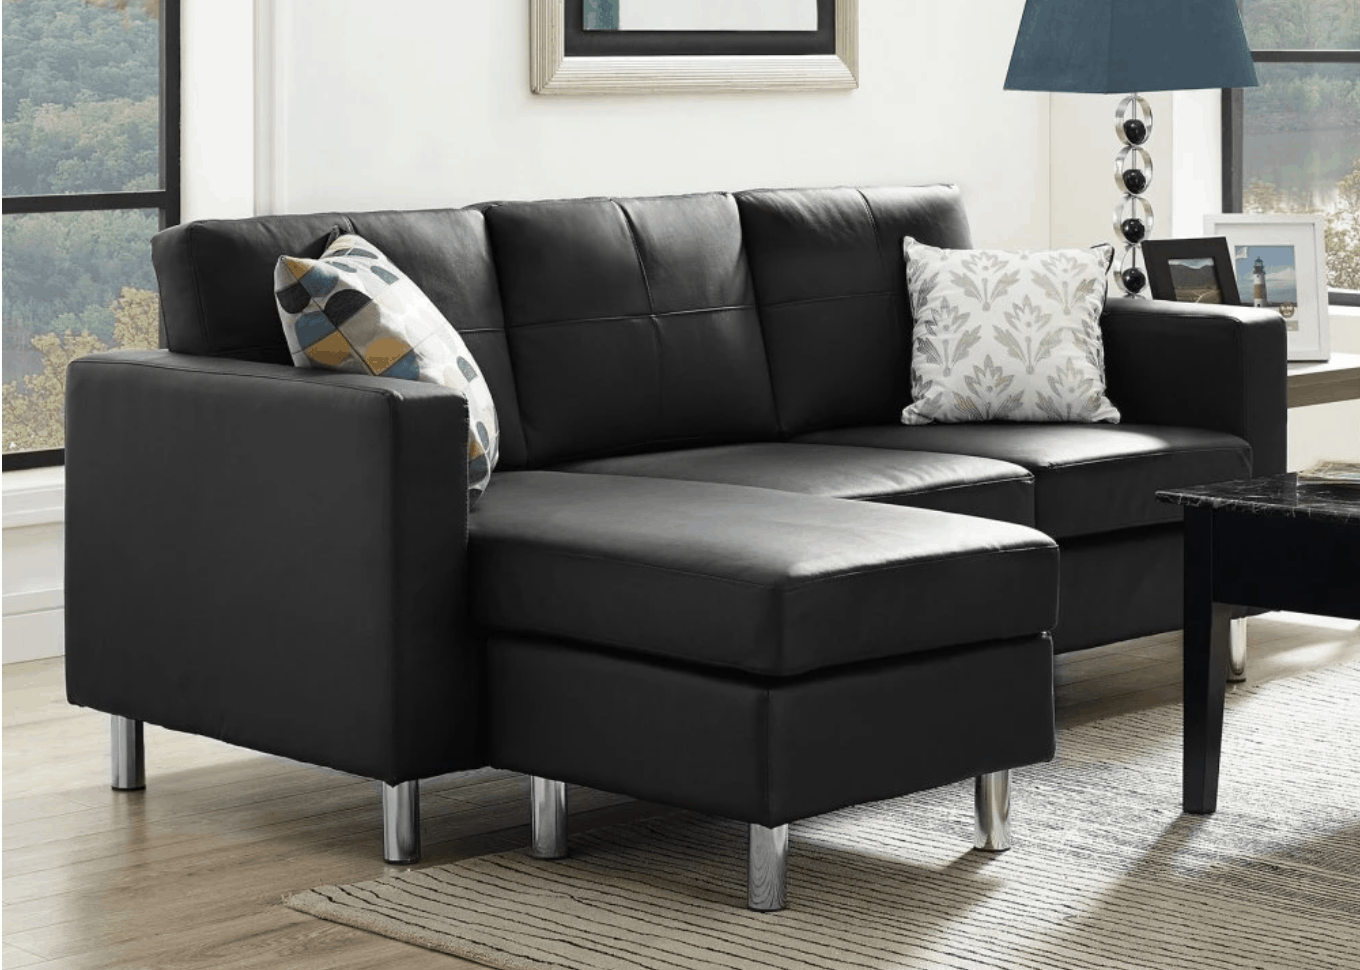 75 modern sectional sofas for small spaces 2018 for Small sectional sofa